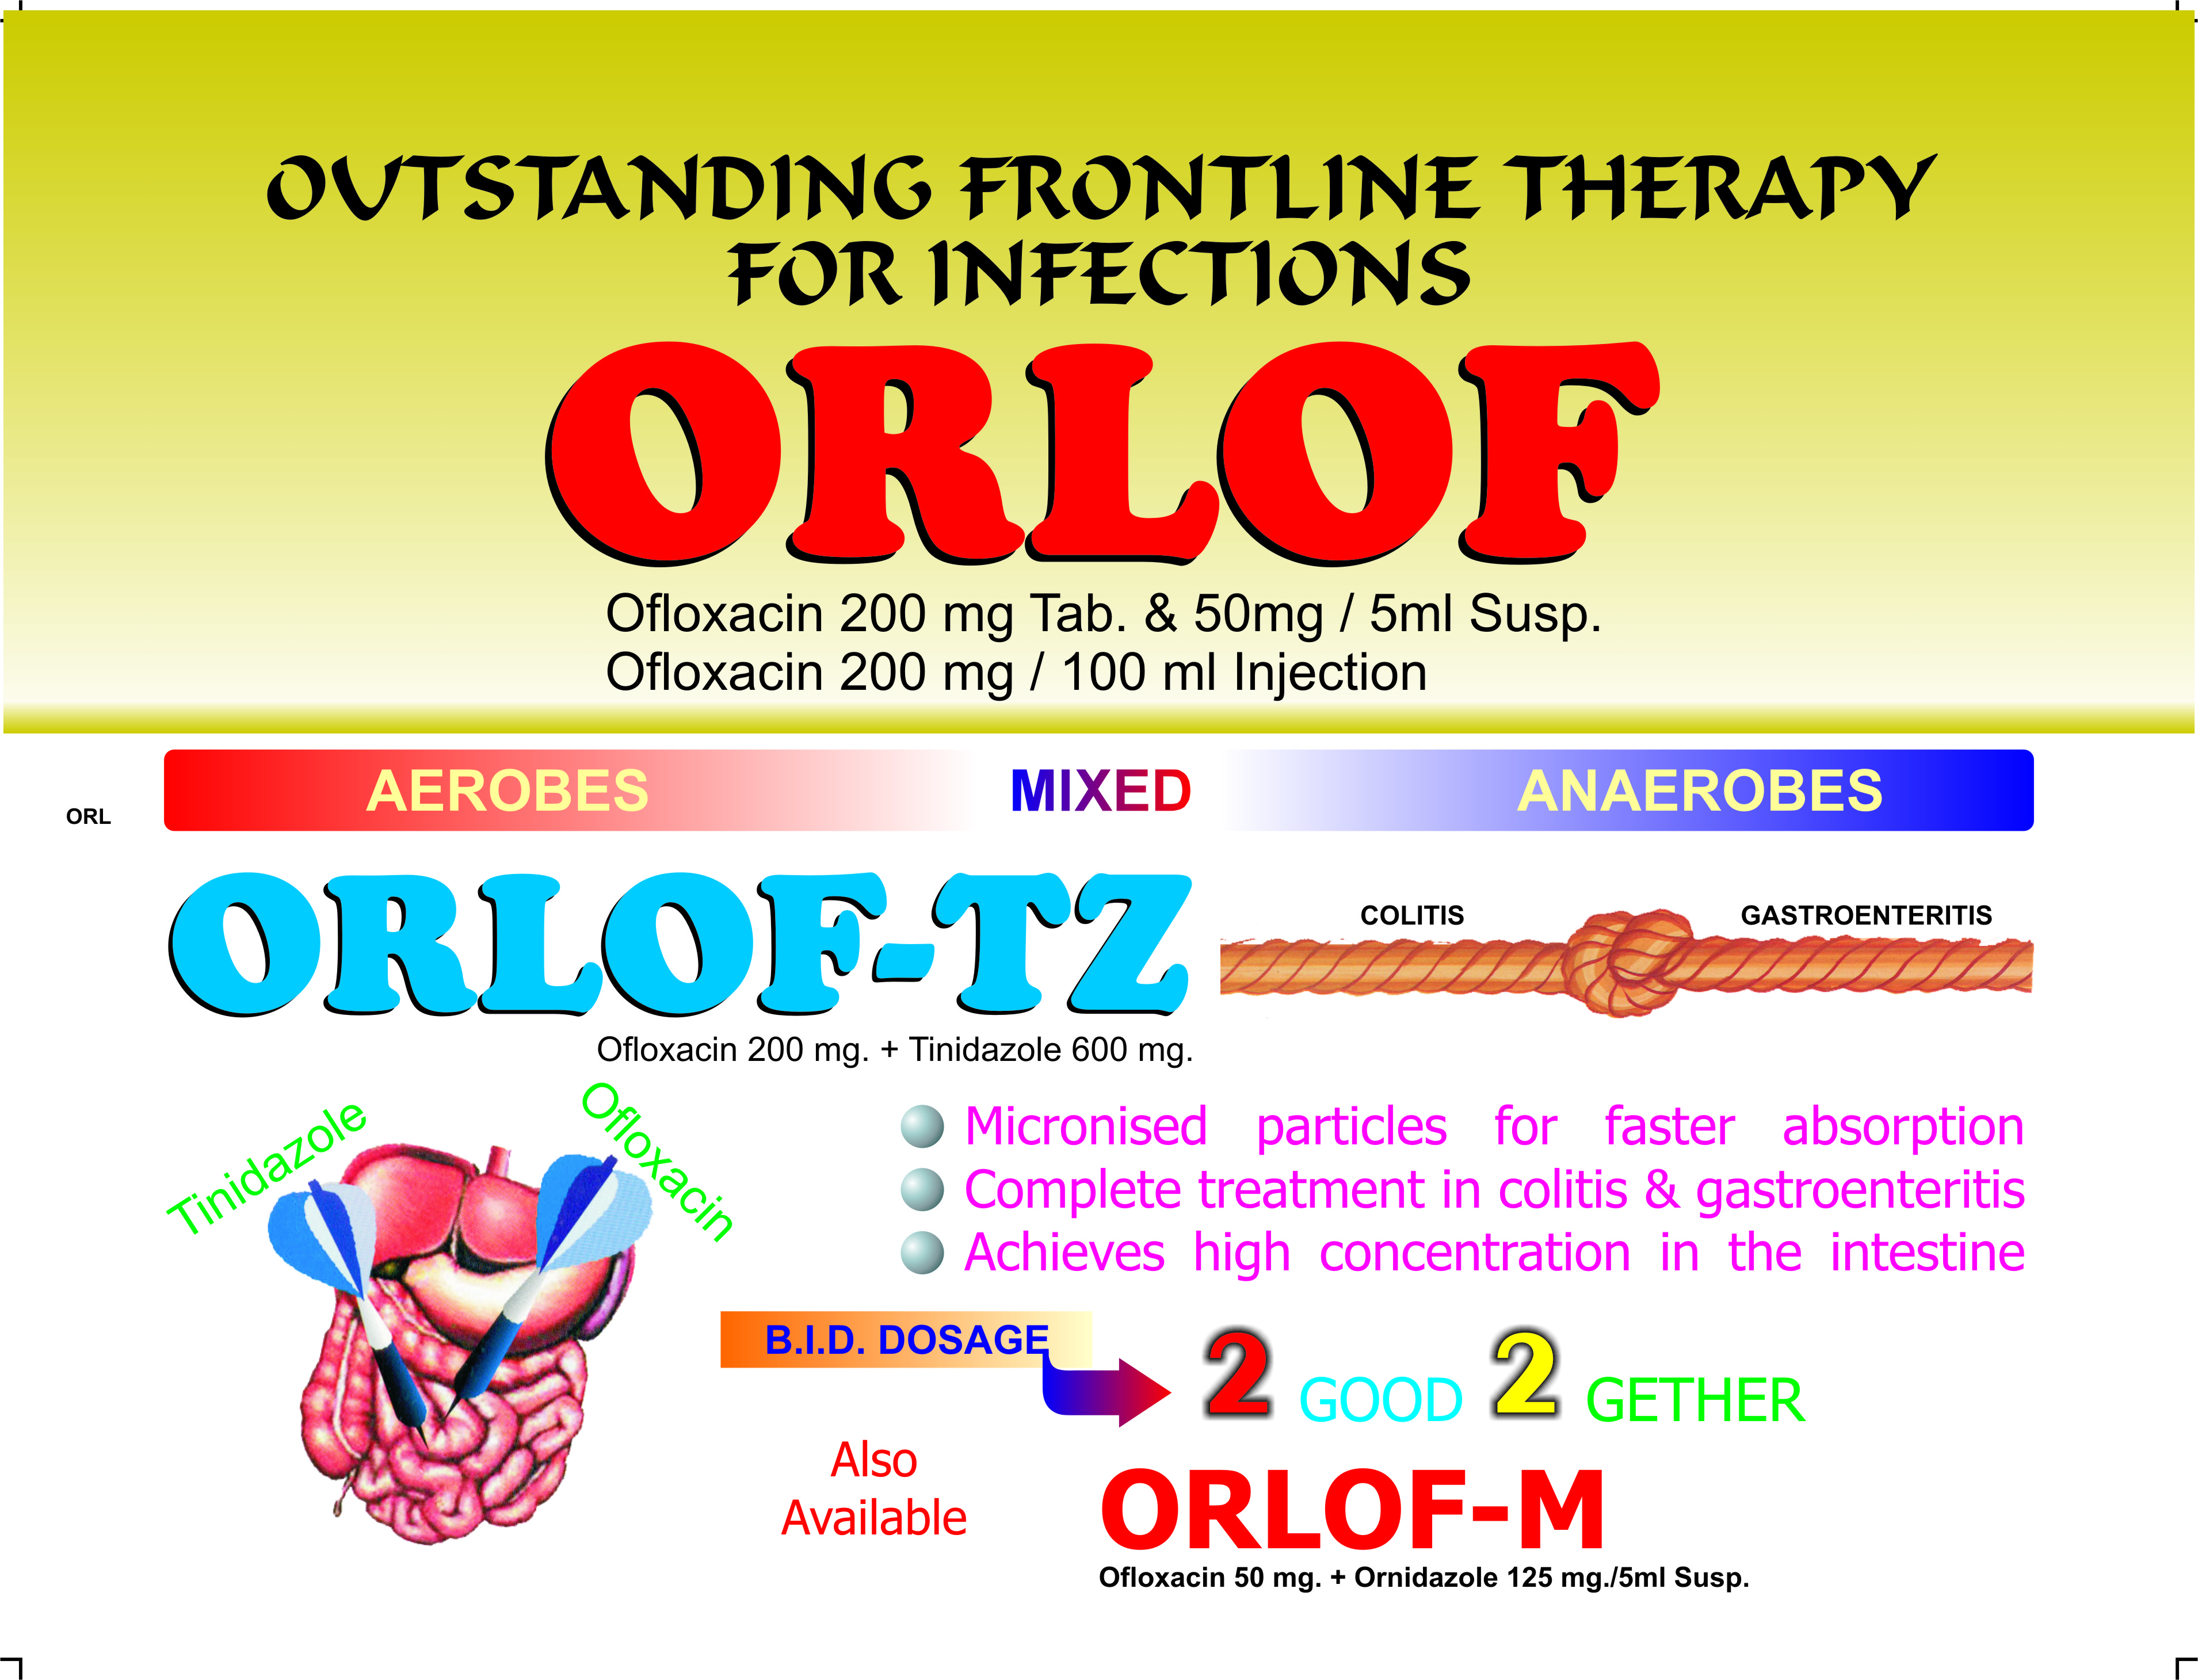 Cefixime oral : uses, side effects, interactions, pictures